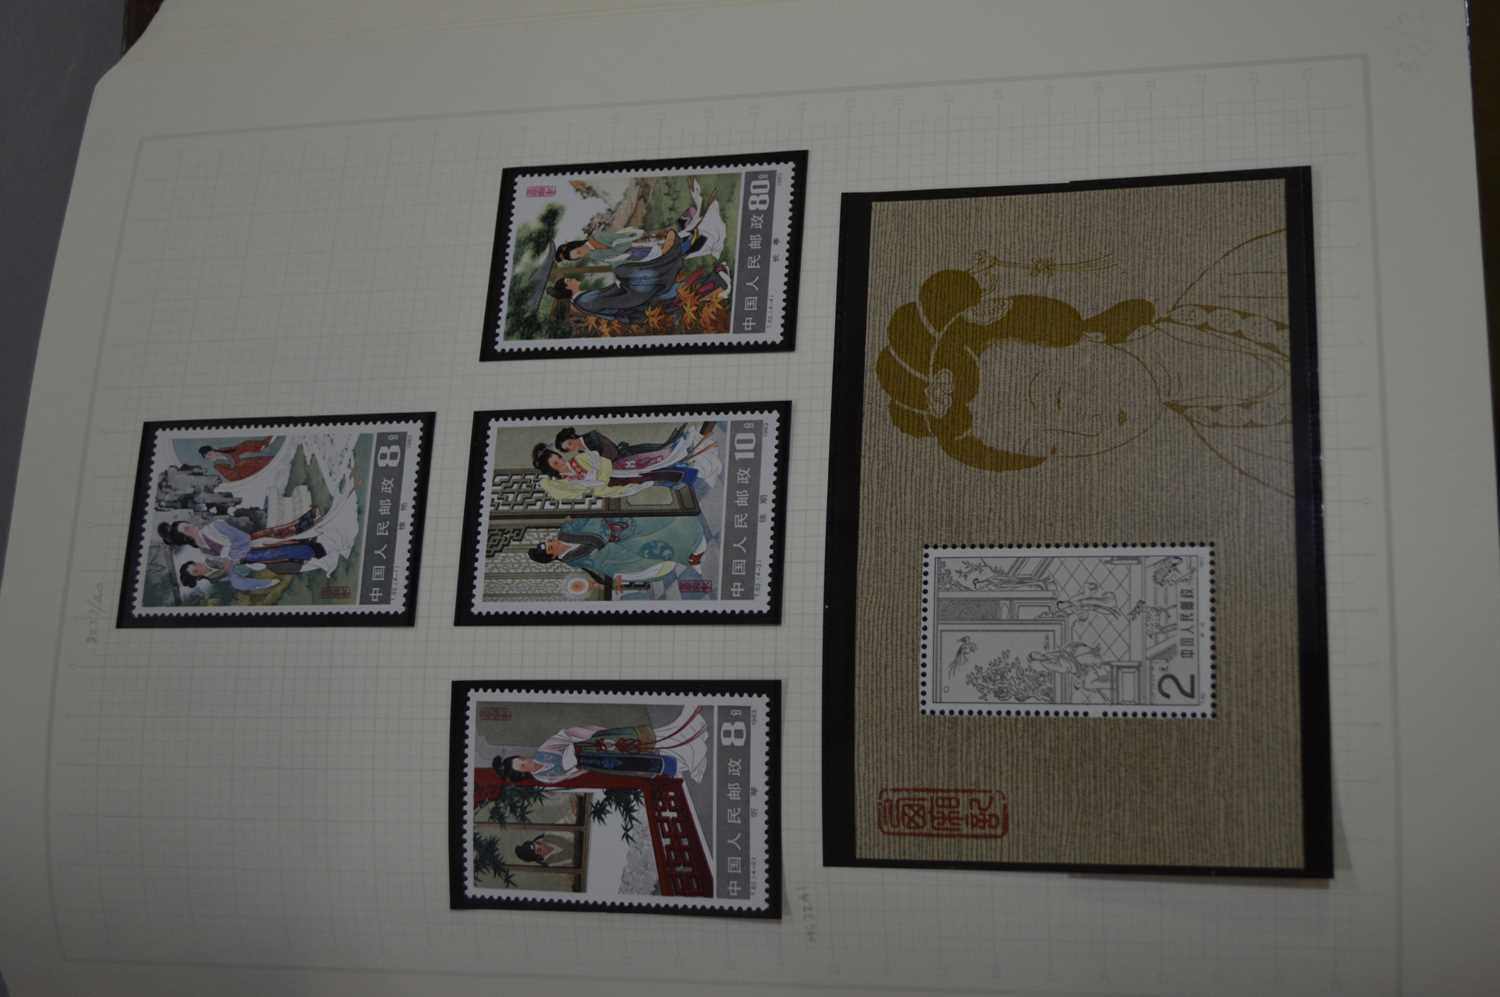 Lot 85 - 1980s Chinese stamps including mini-sheets